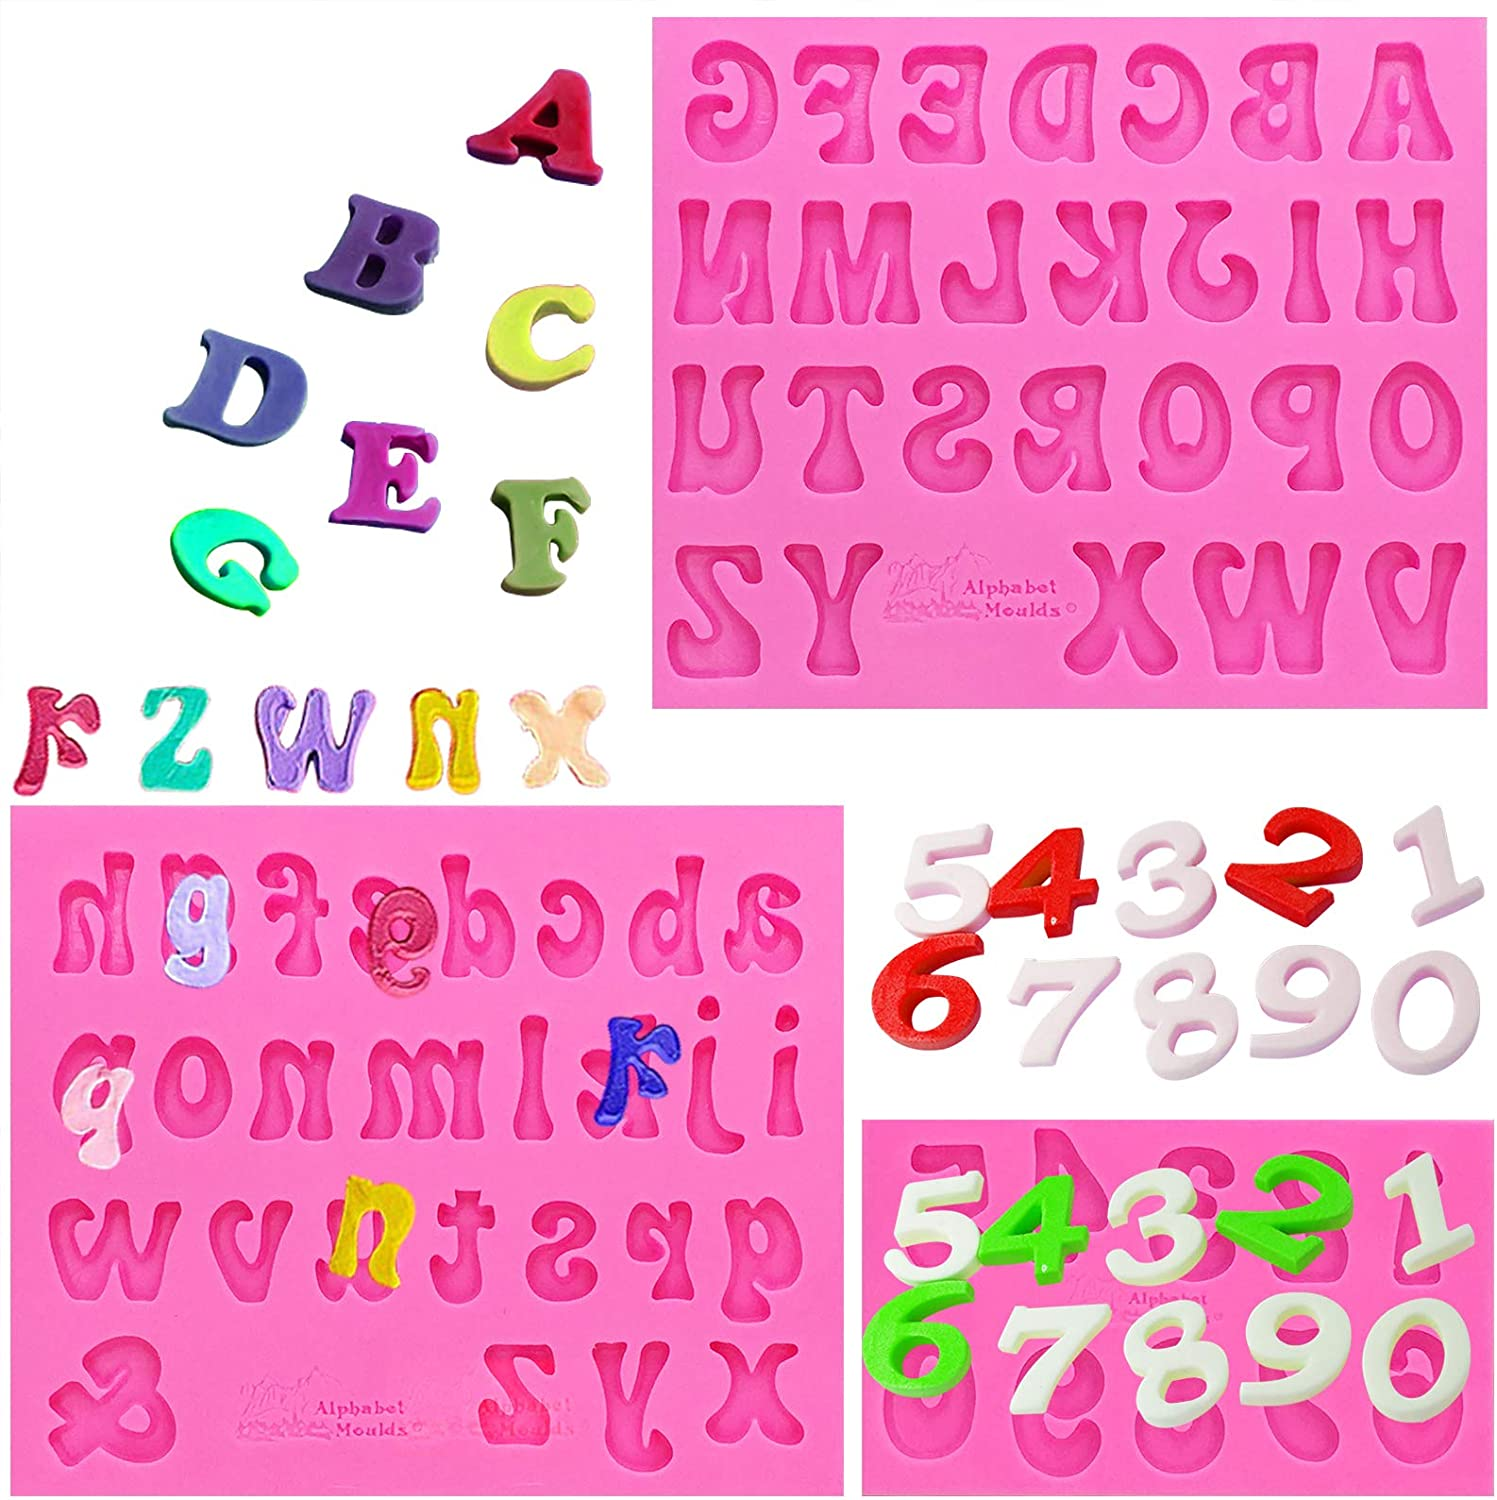 Amurgo 3 Pieces Silicone Letter Mold and Number Candy Molds, Uppercase Lowercase 0-9 Number Handmade Chocolate Molds Happy Birthday Cake Decorations Symbols Silicone Tray